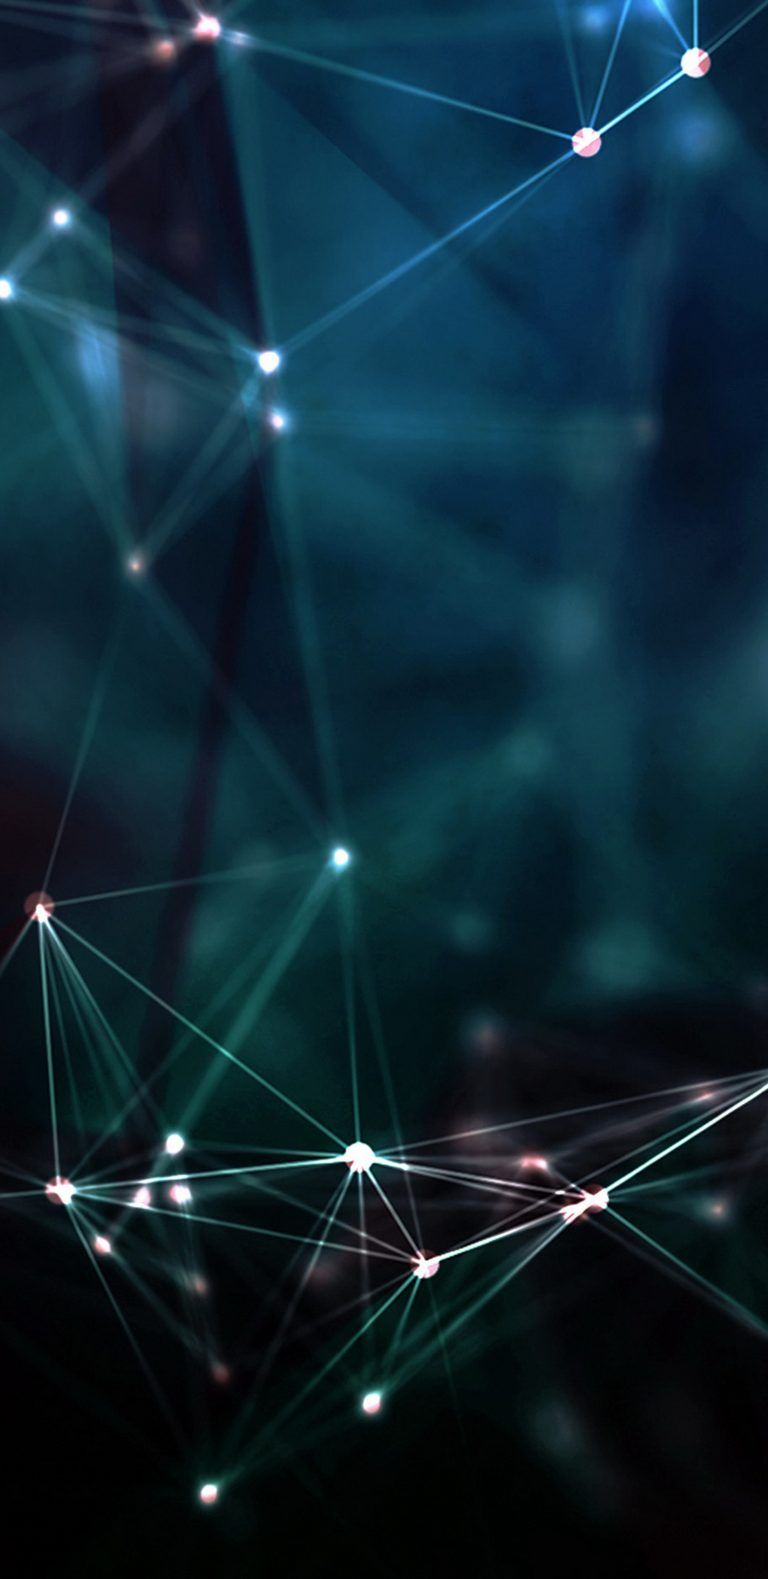 3D Dark Background with Lights for Samsung Galaxy S9 Wallpaper 768x1579